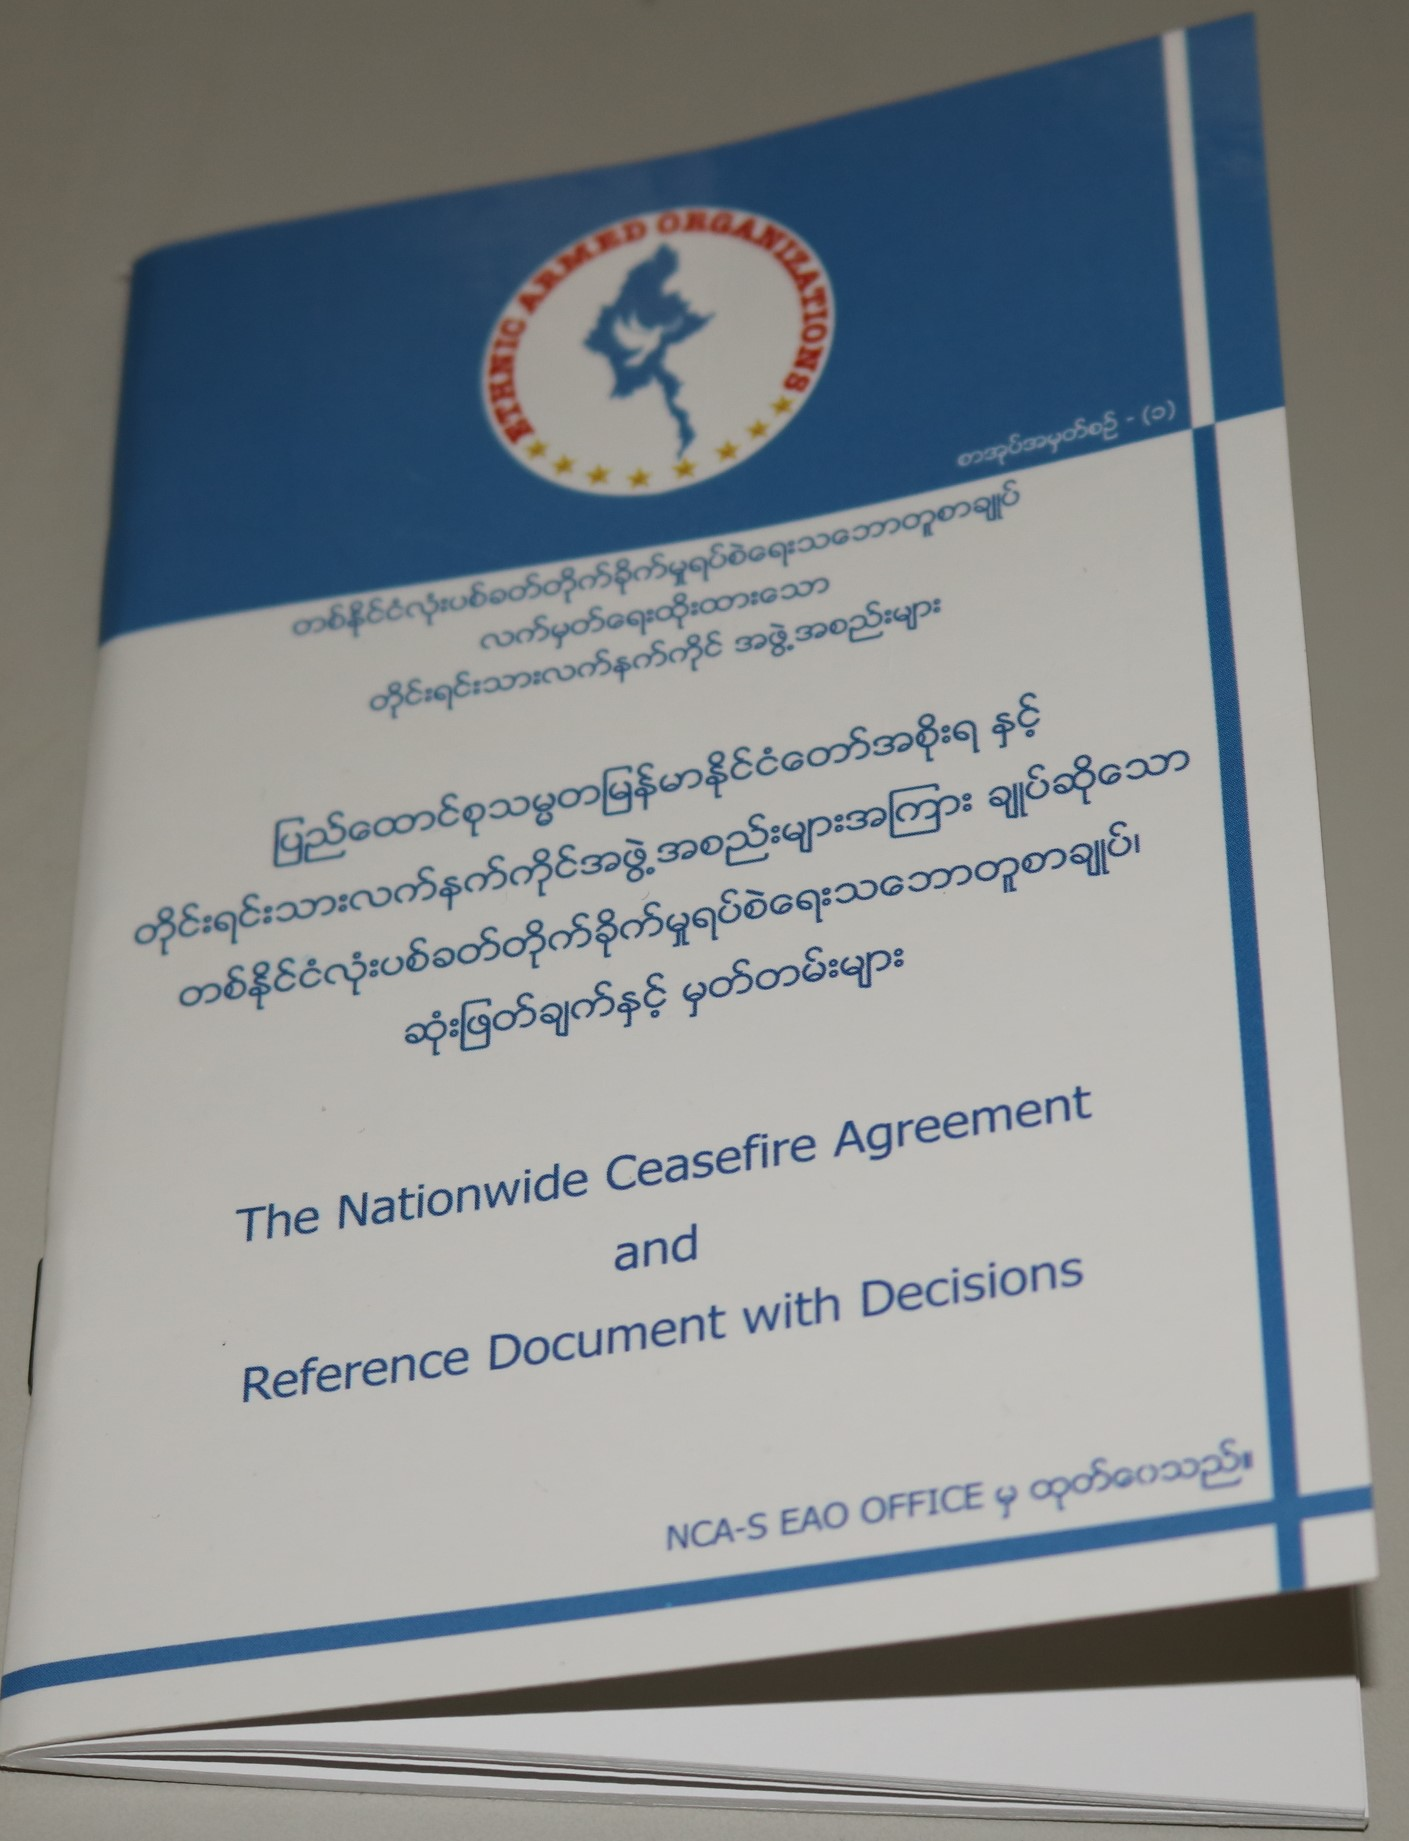 Nationwide Ceasefire Agreement between the Government and the Ethnic Armed Organizations